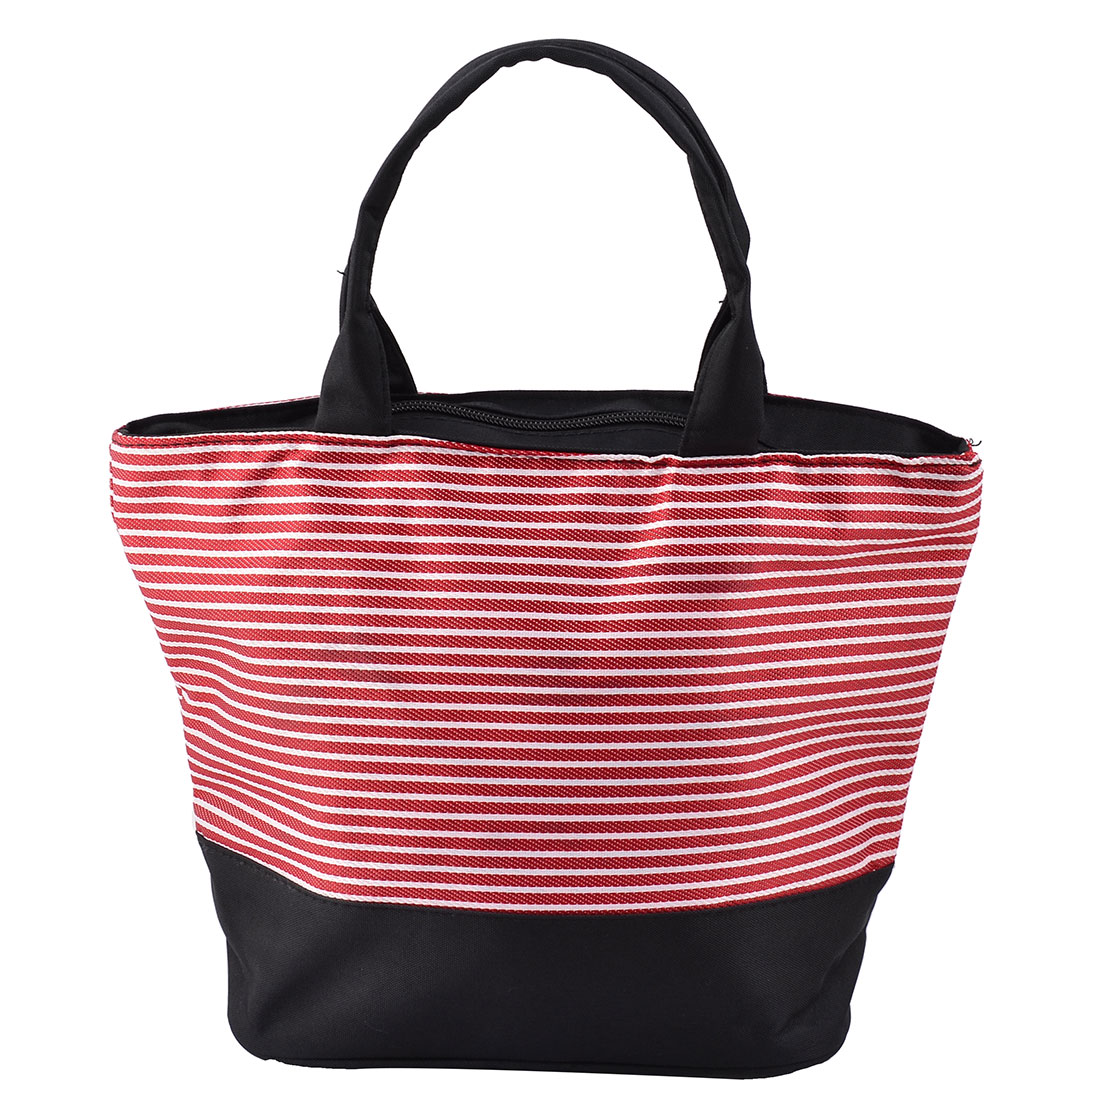 Picnic Oxford Fabric Stripe Print Rectangle Shaped Lunch Cooler Tote Bag Red